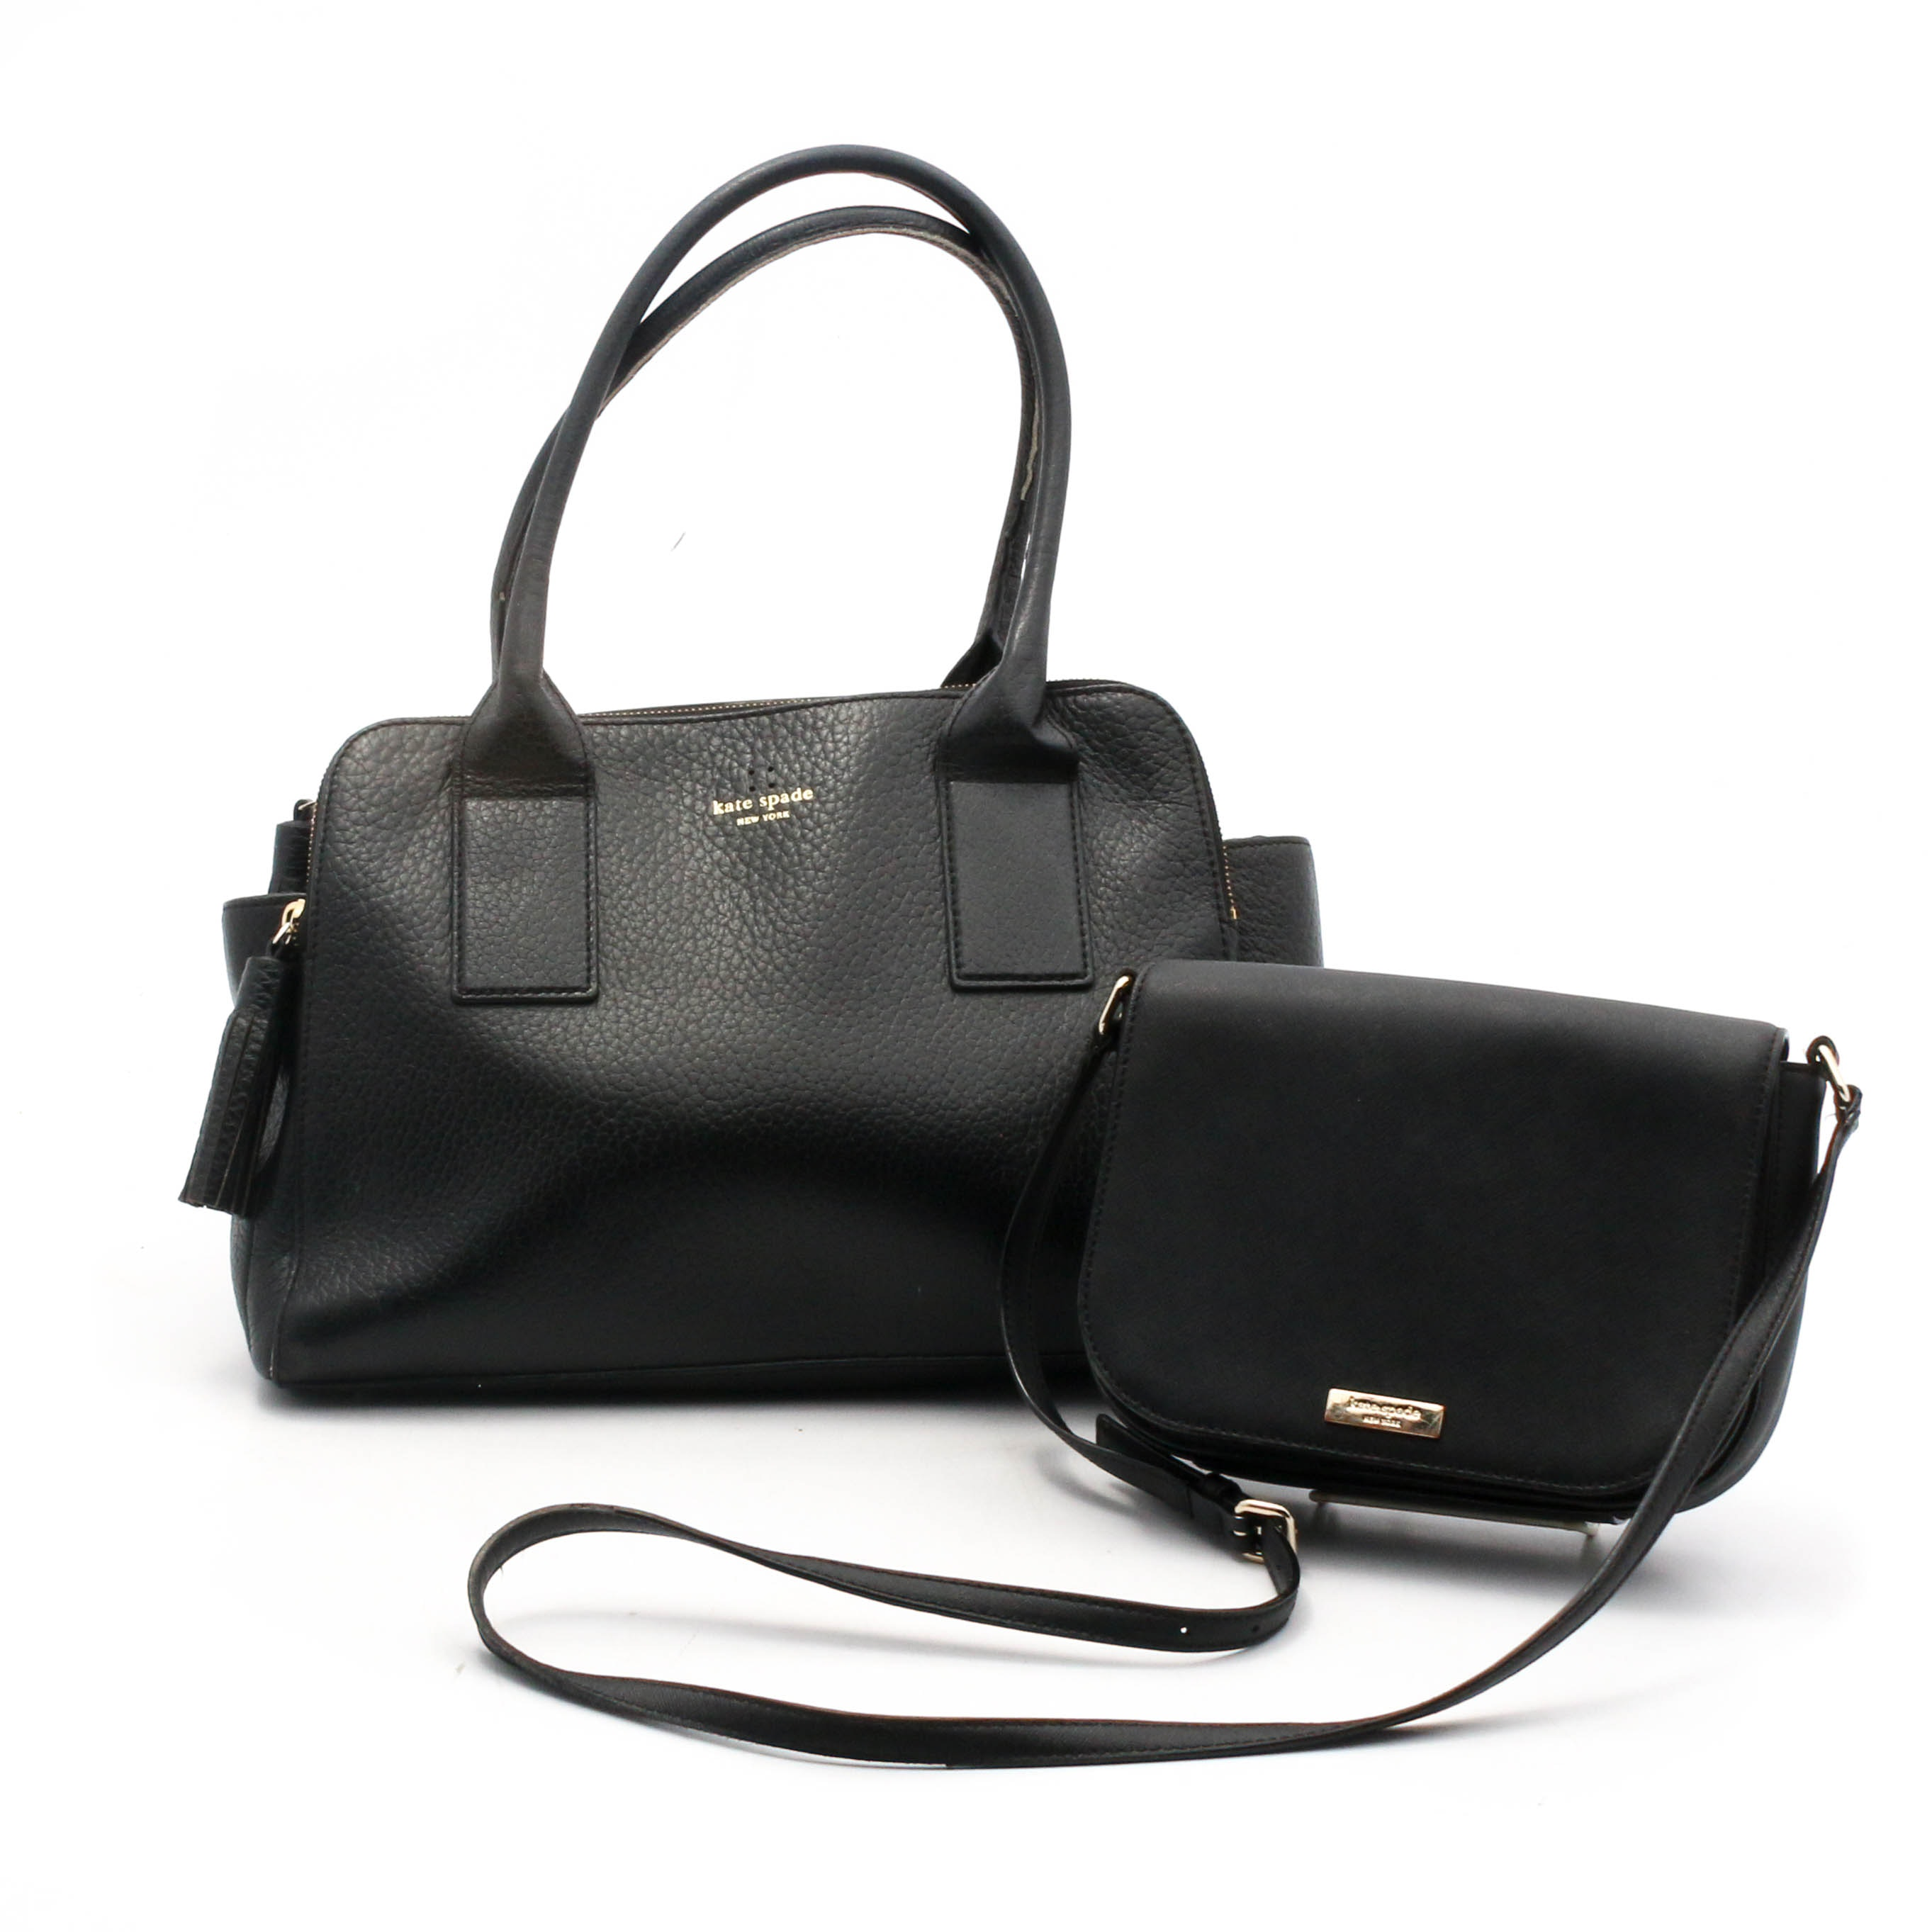 Kate Spade New York Black Leather Satchel and Crossbody